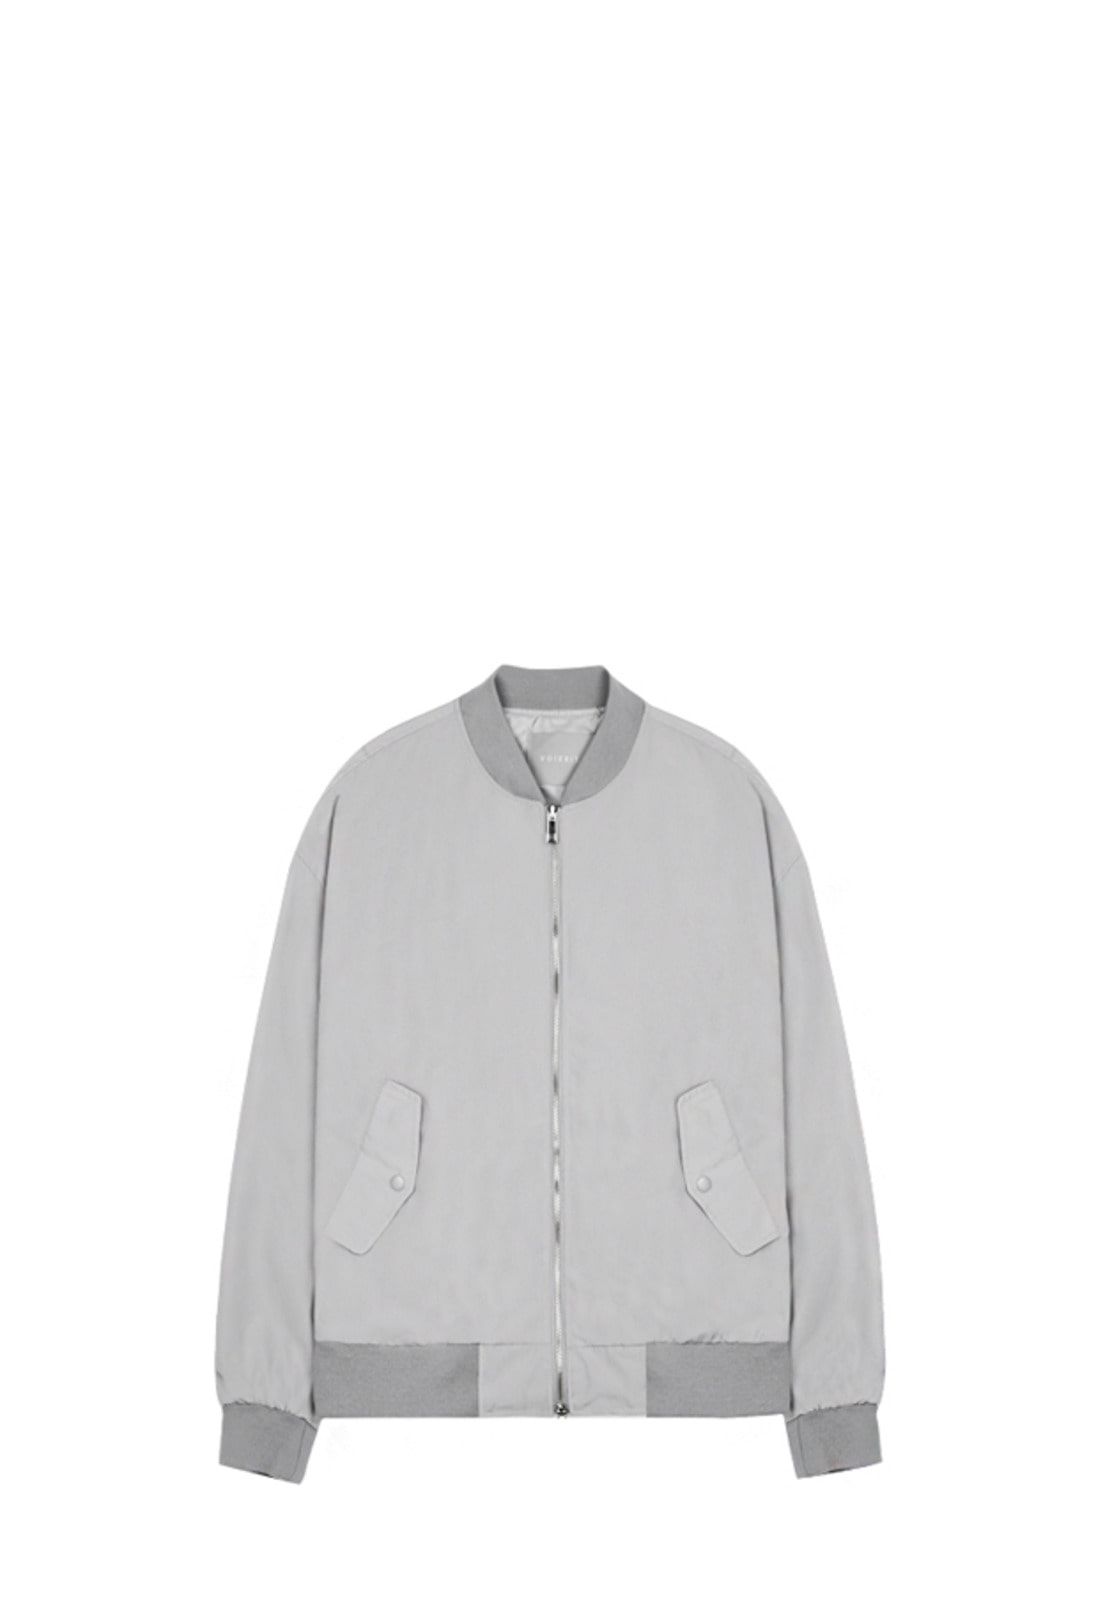 V620 SIMPLE OVERSIZE MA-1 JACKETLIGHT GRAY